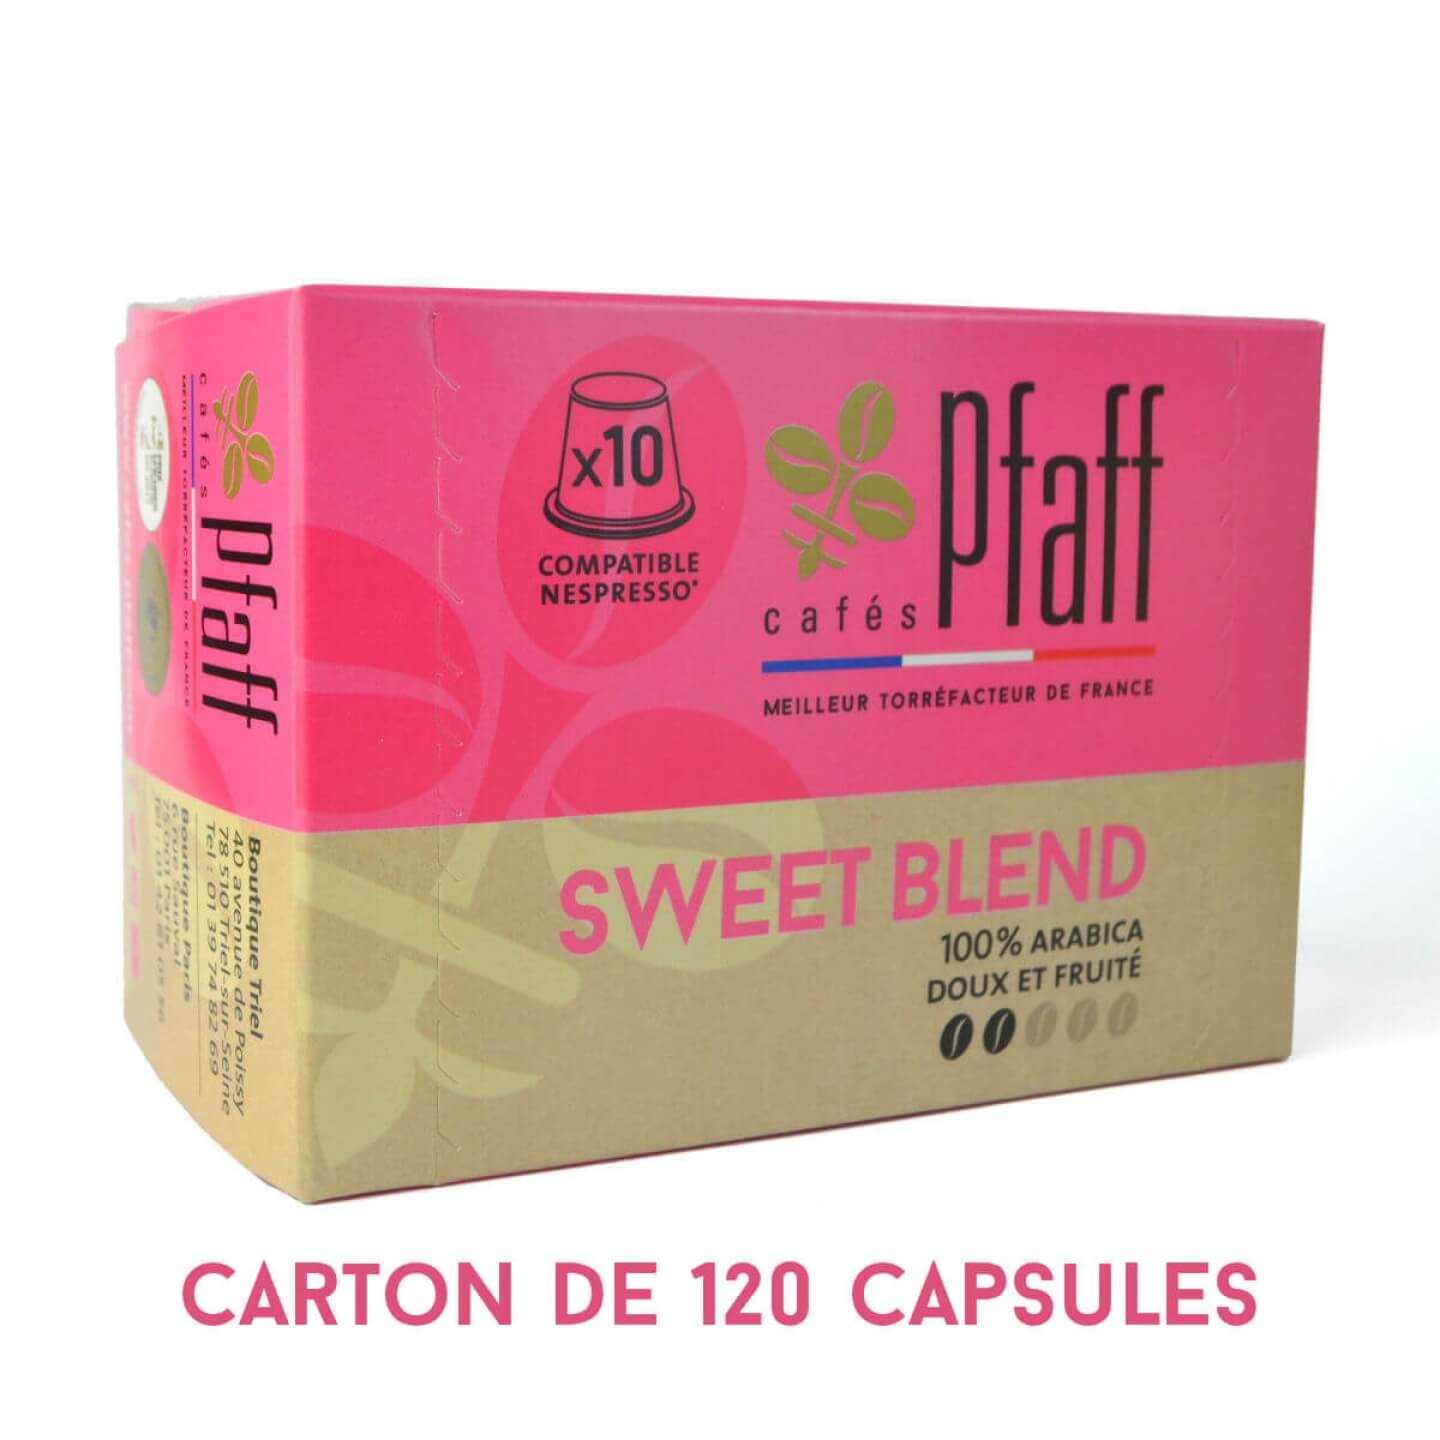 capsules sweet blend compatibles nespresso 120